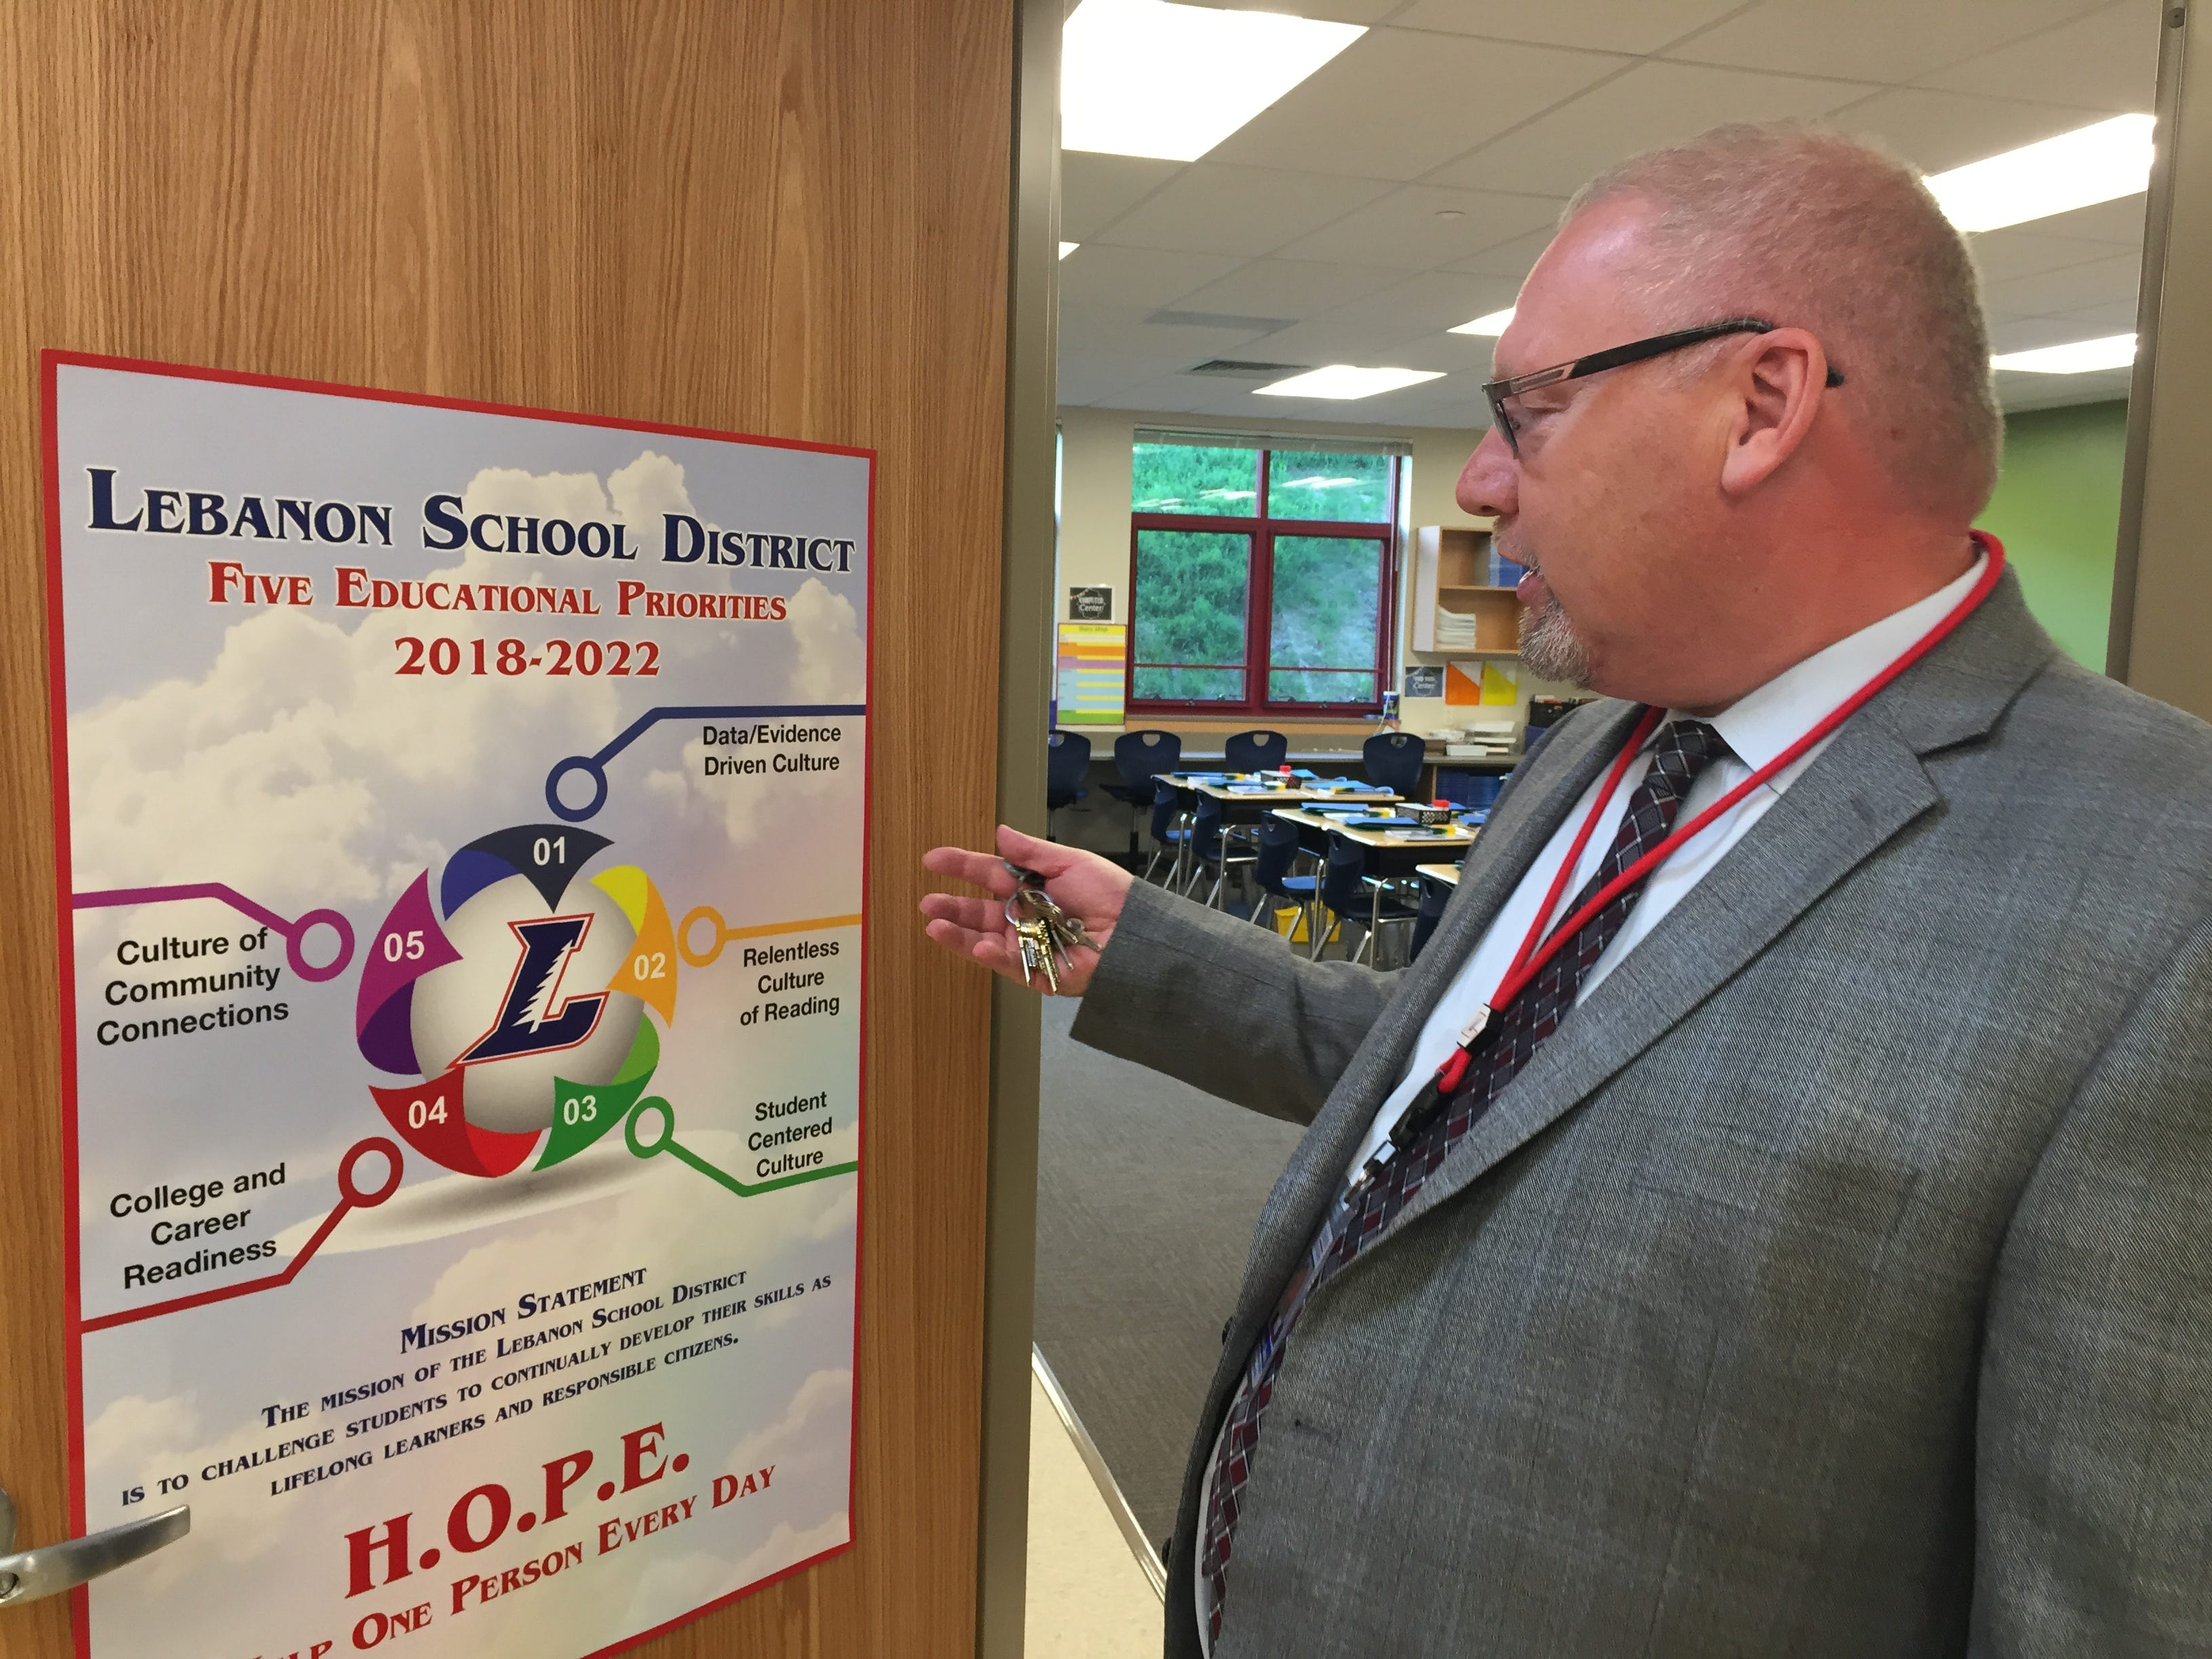 Shawn Canady, chief information officer at Lebanon School District, discussing how the district's five educational priorities are represented in the new Northwest Elementary School building during an open house Aug. 23, 2018.